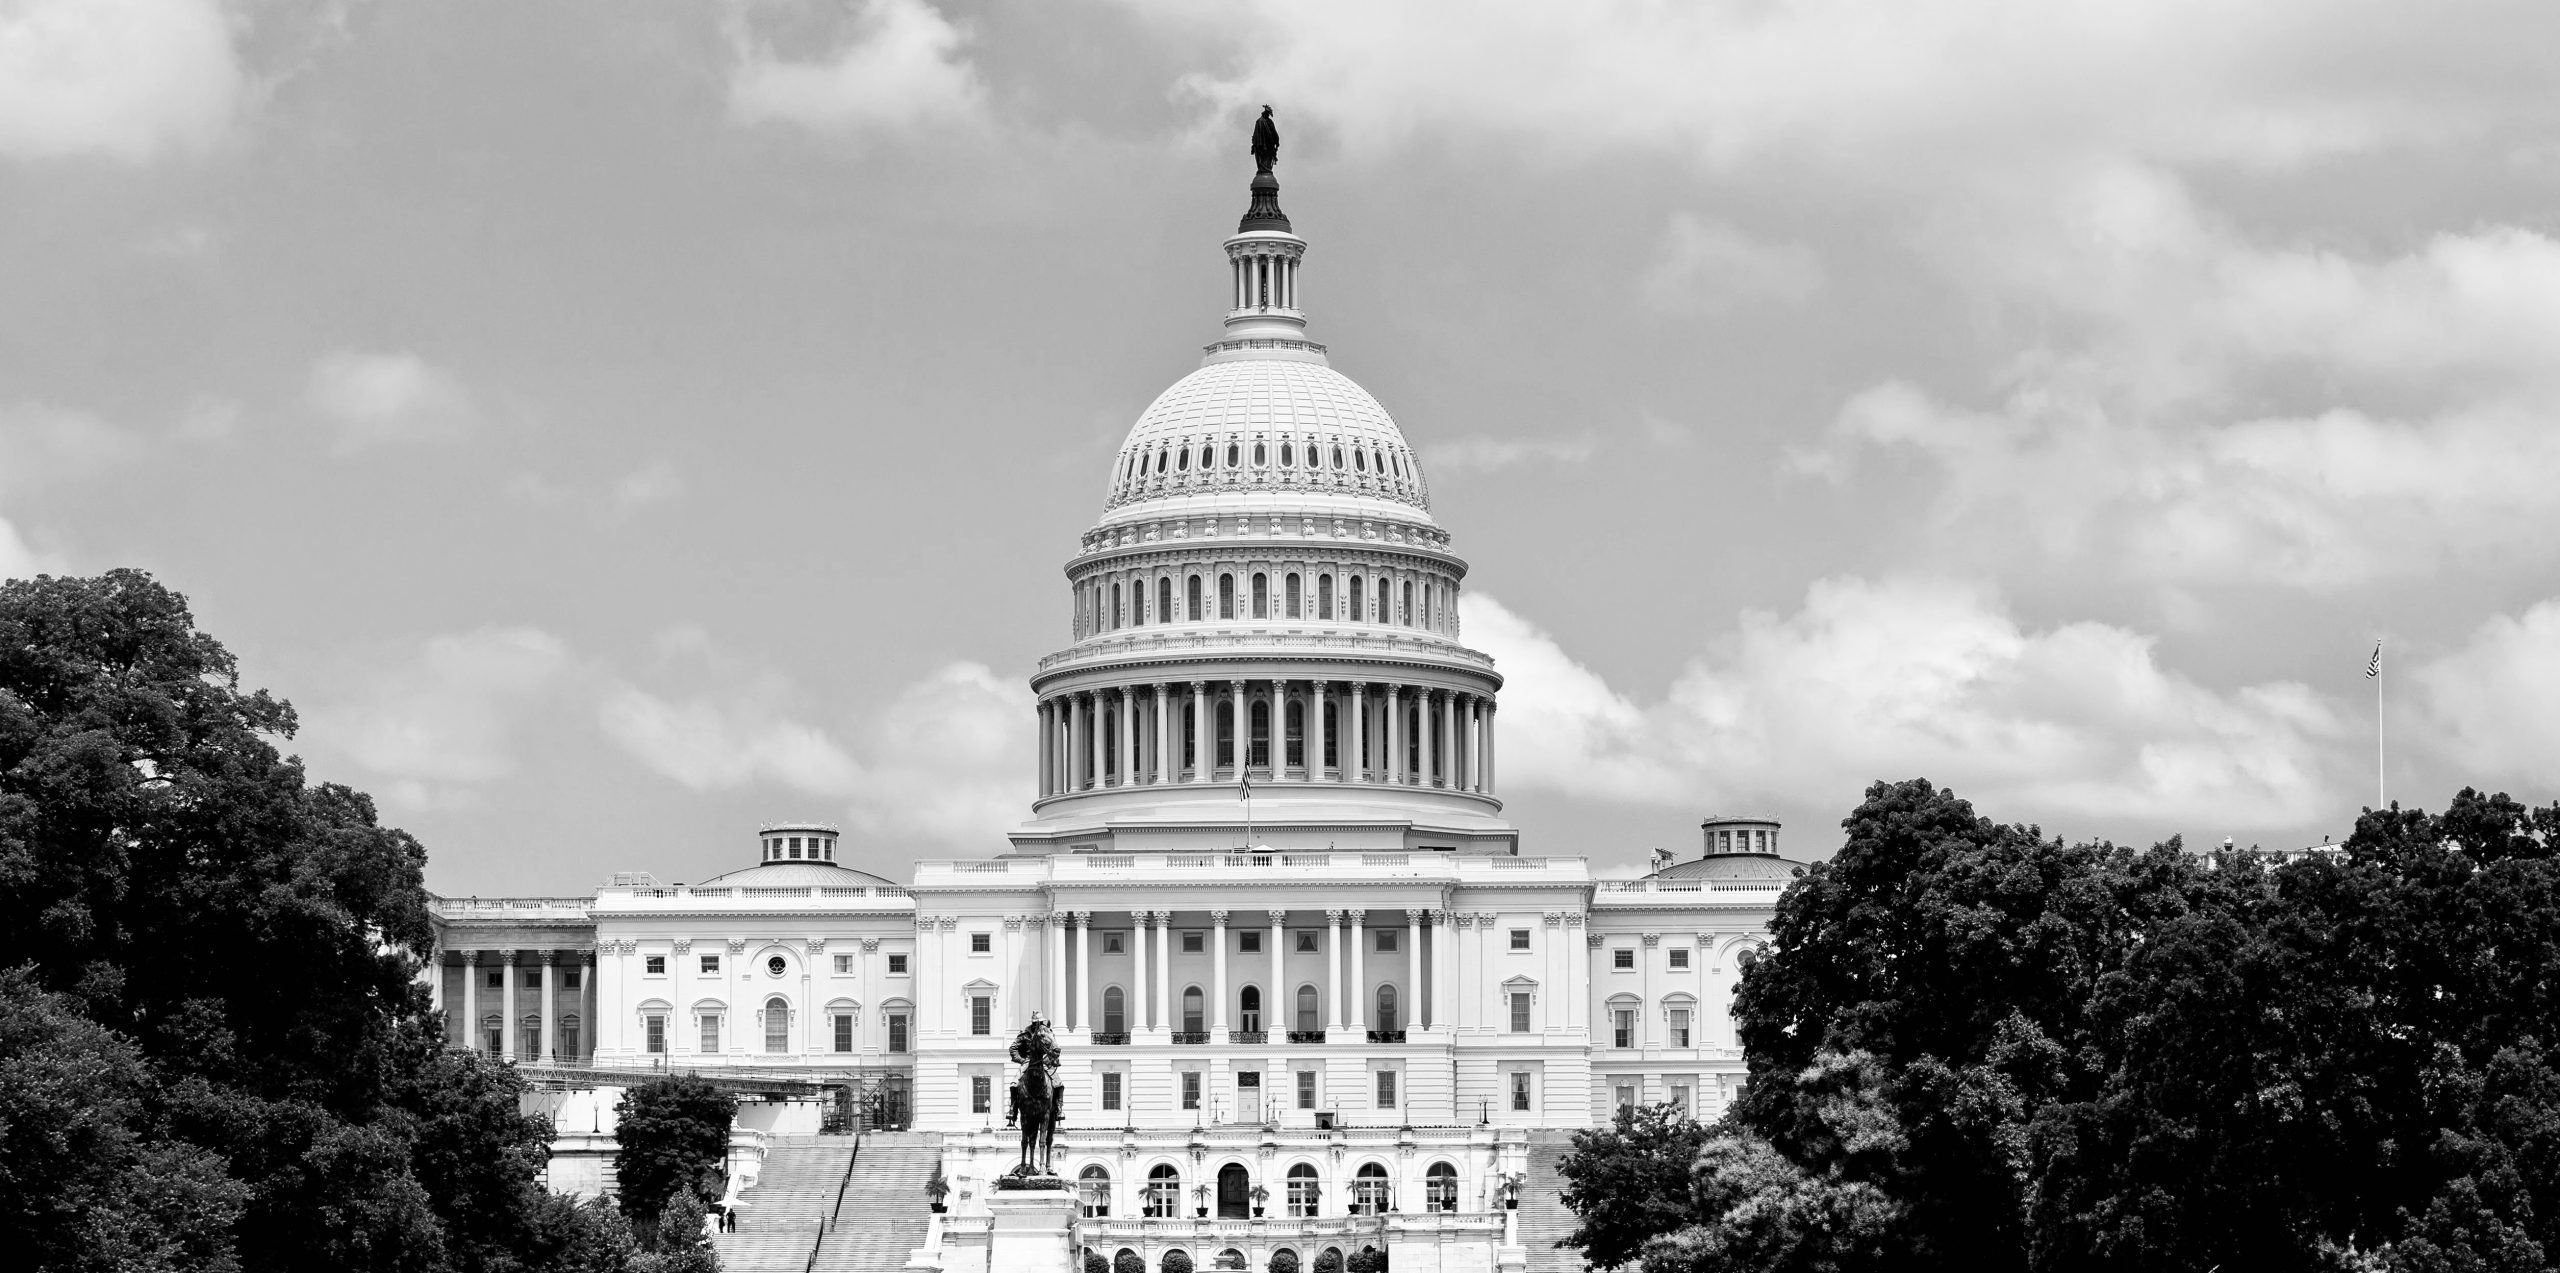 U.S. Capitol building in black and white